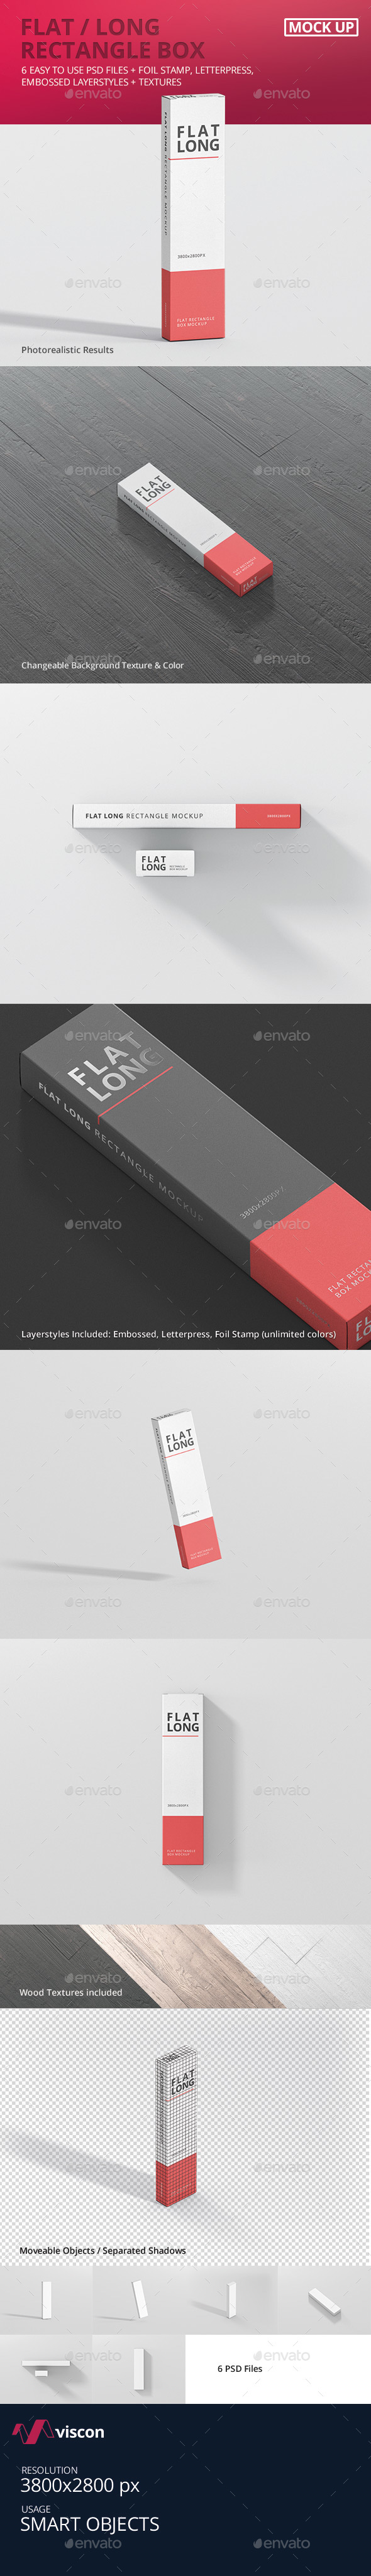 Box Mockup - Flat Long Rectangle - Miscellaneous Packaging